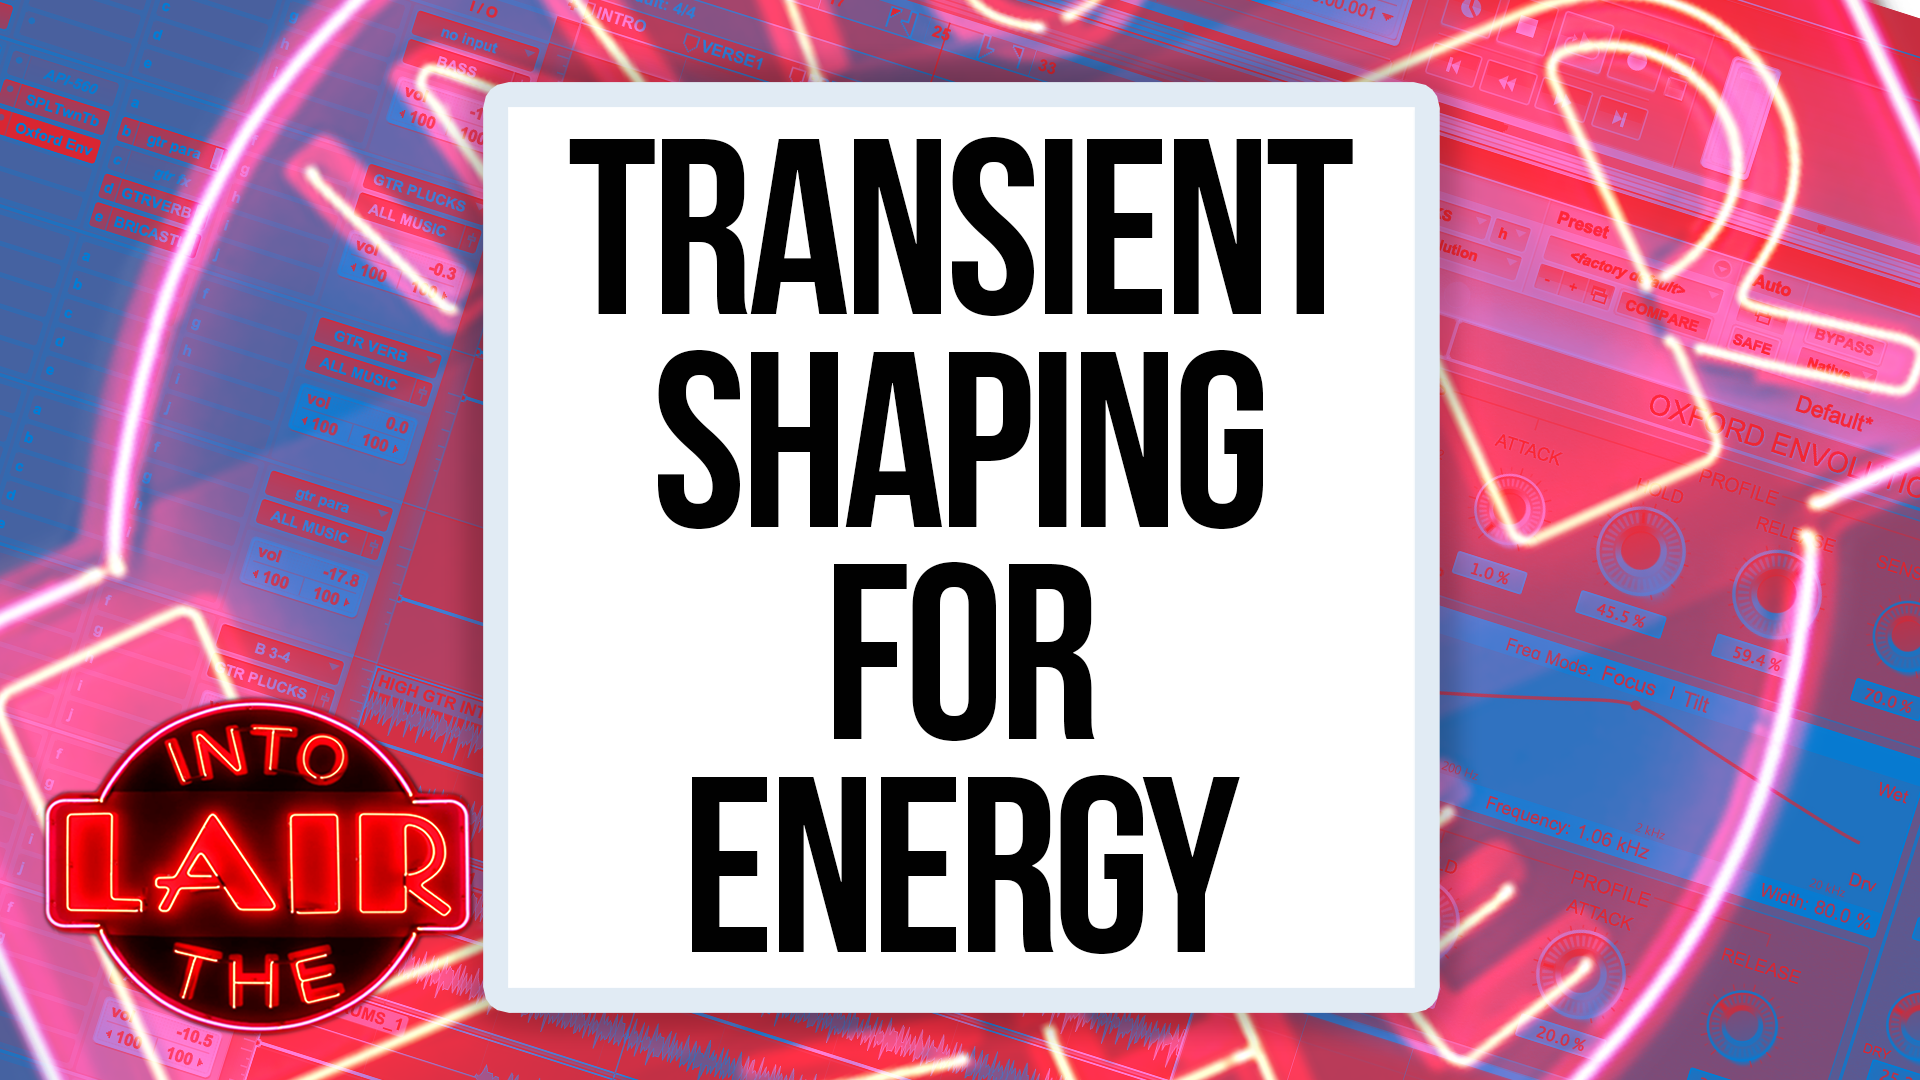 Transient Shaping For Energy